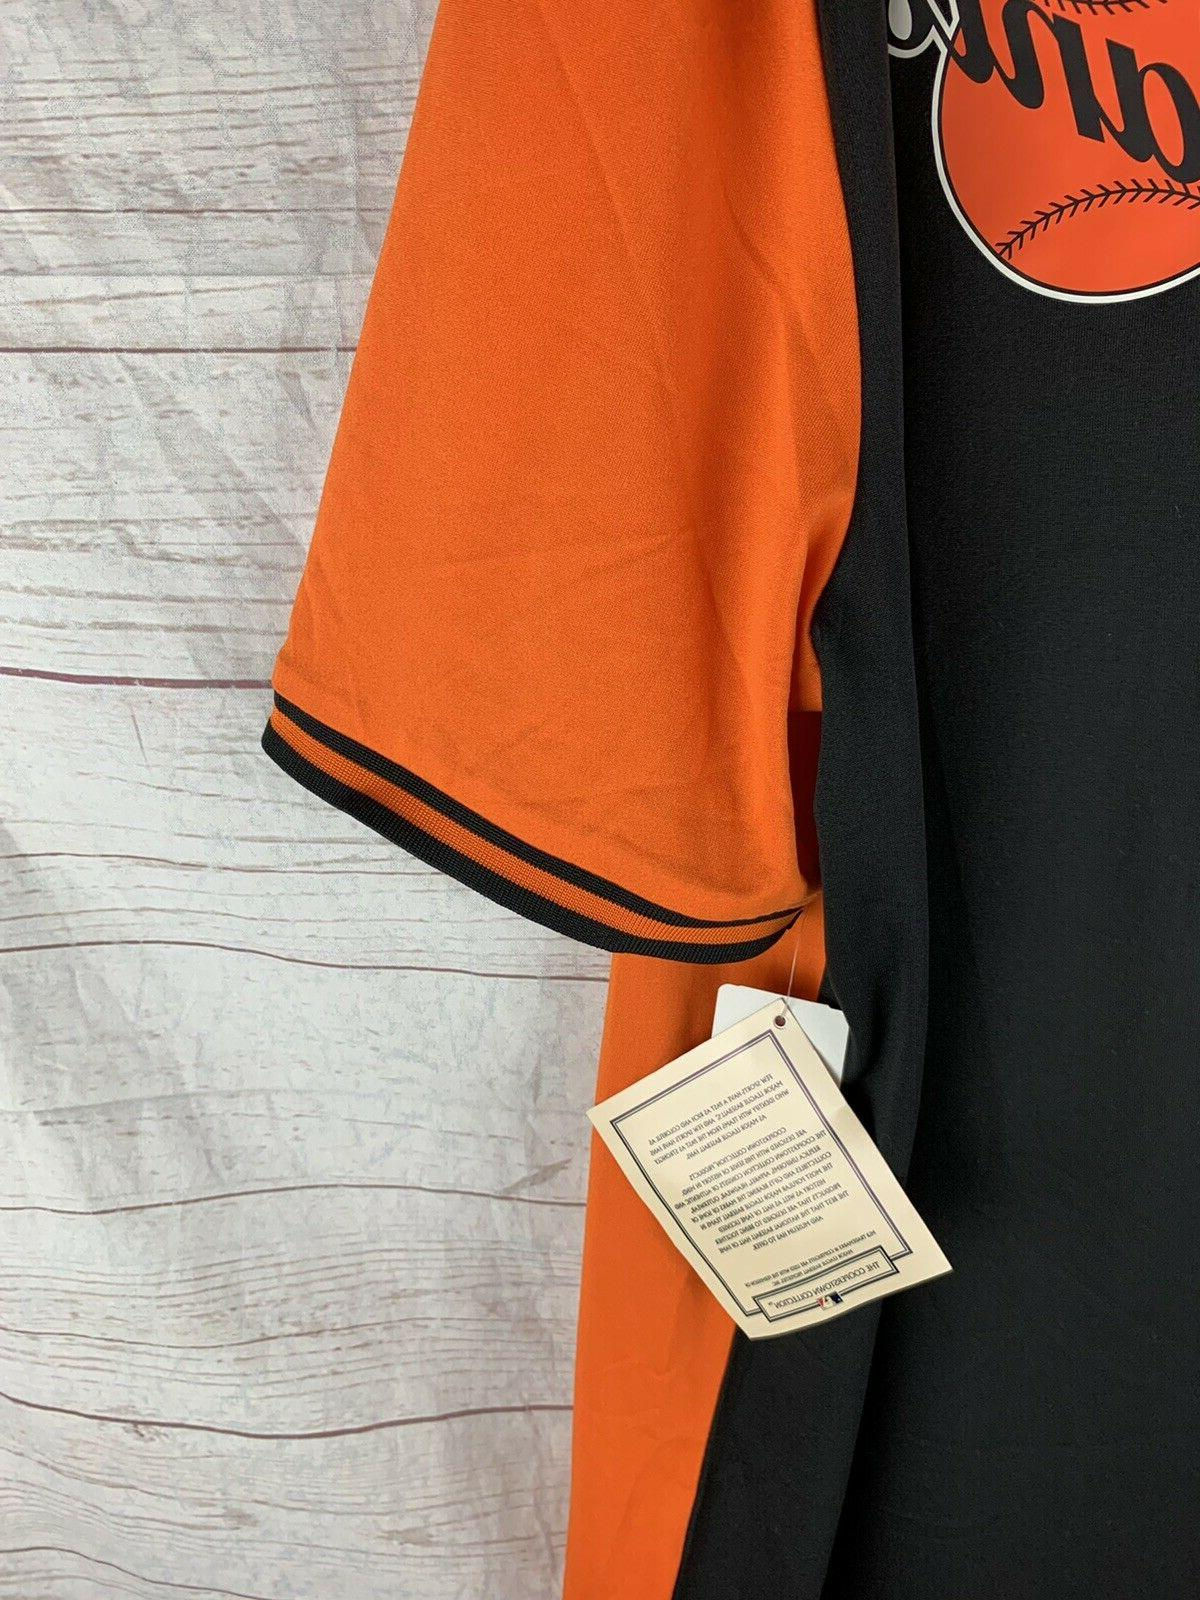 New Cooperstown Francisco Giants size